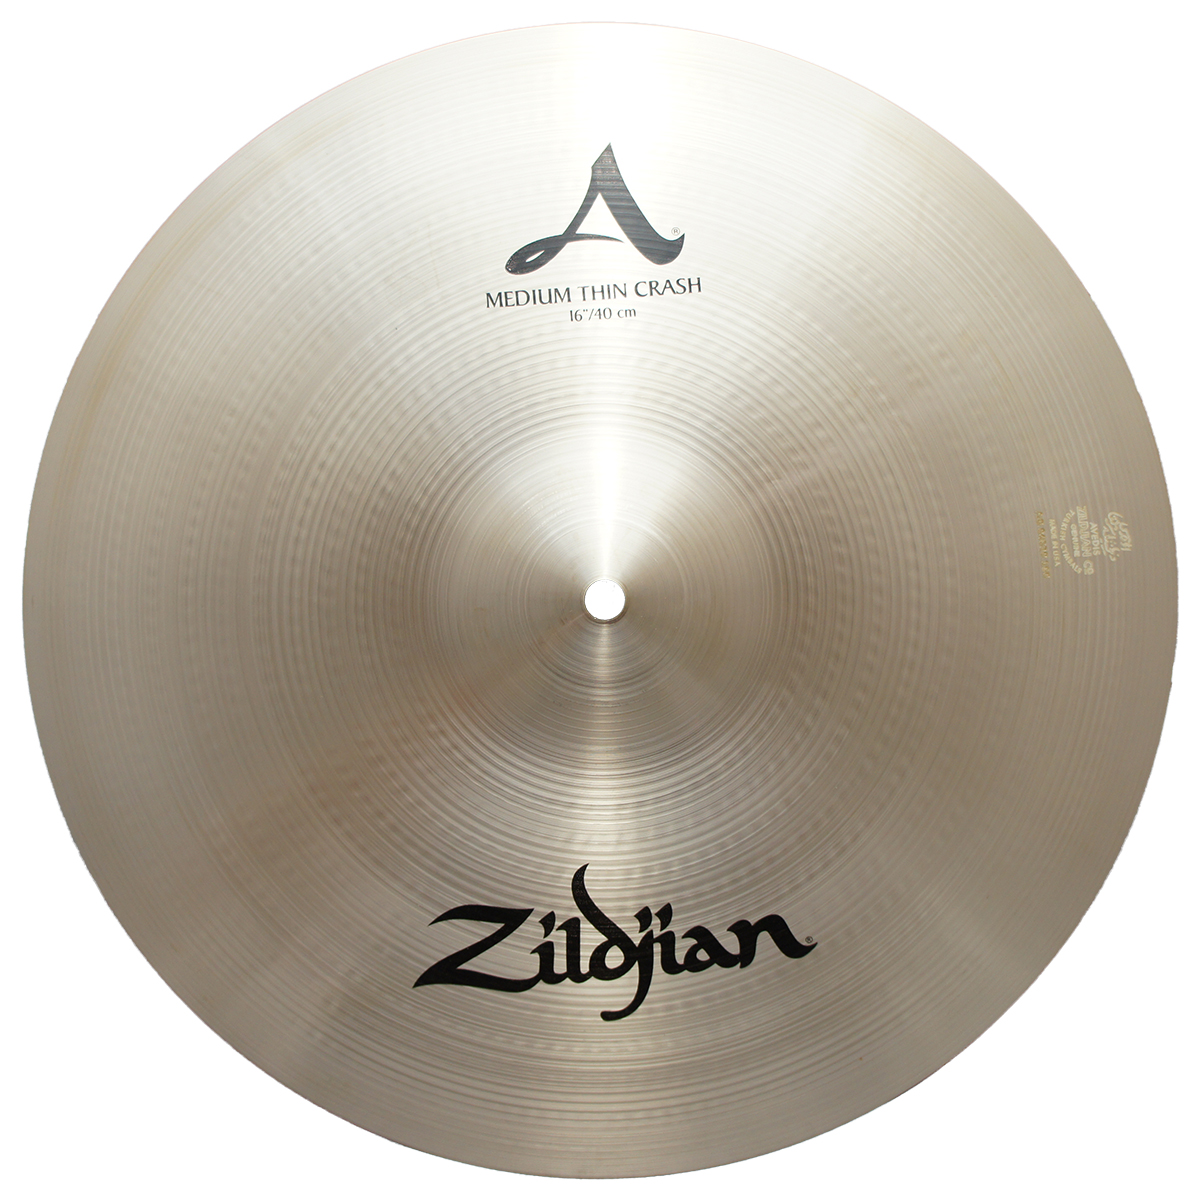 zildjian 16 a series medium thin crash cast bronze cymbal with mid to high pitch a0230 zil12. Black Bedroom Furniture Sets. Home Design Ideas